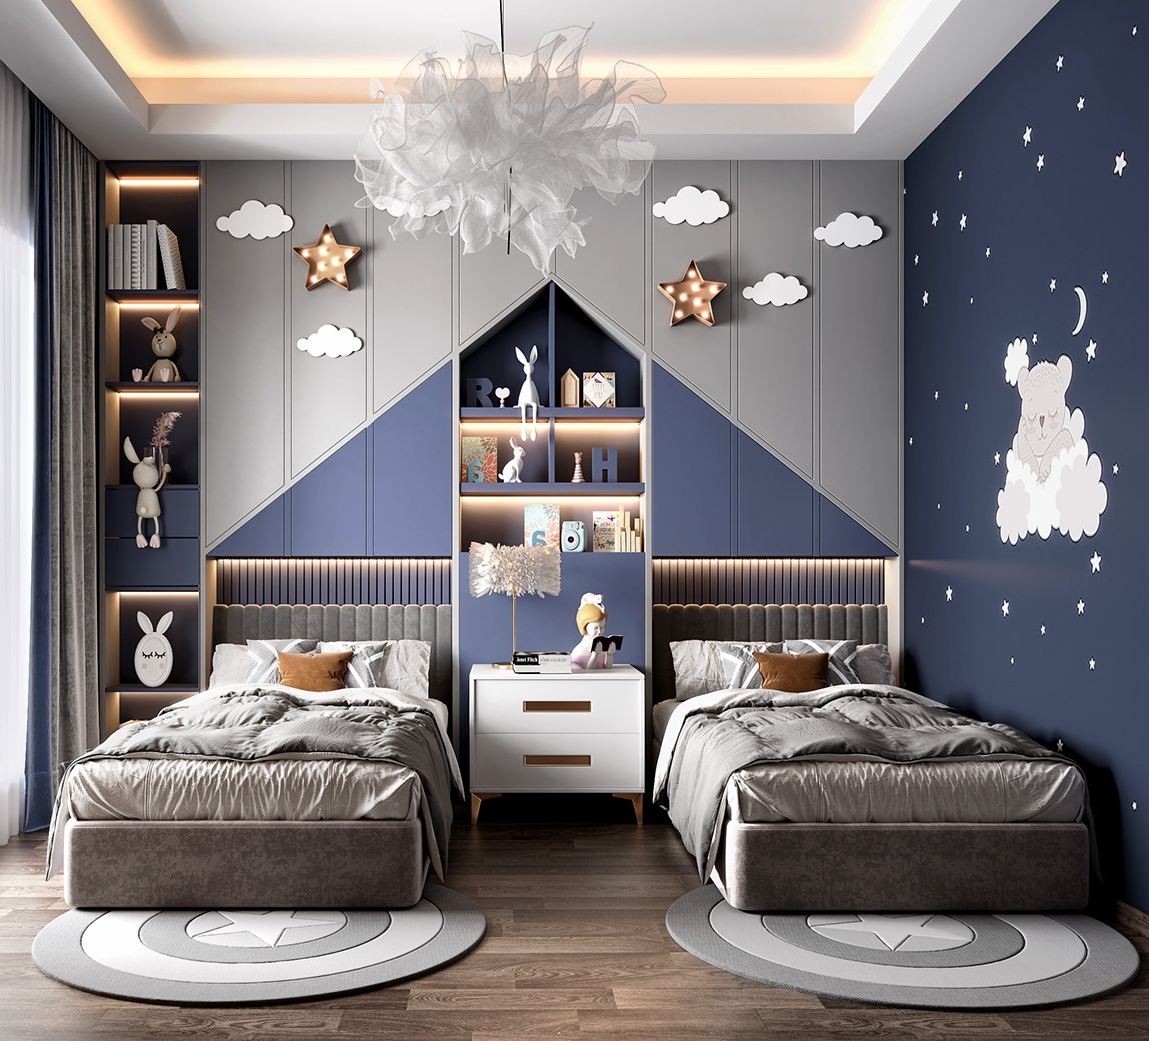 Cute Grey and Blue Bunny Theme Kids Shared Bedroom